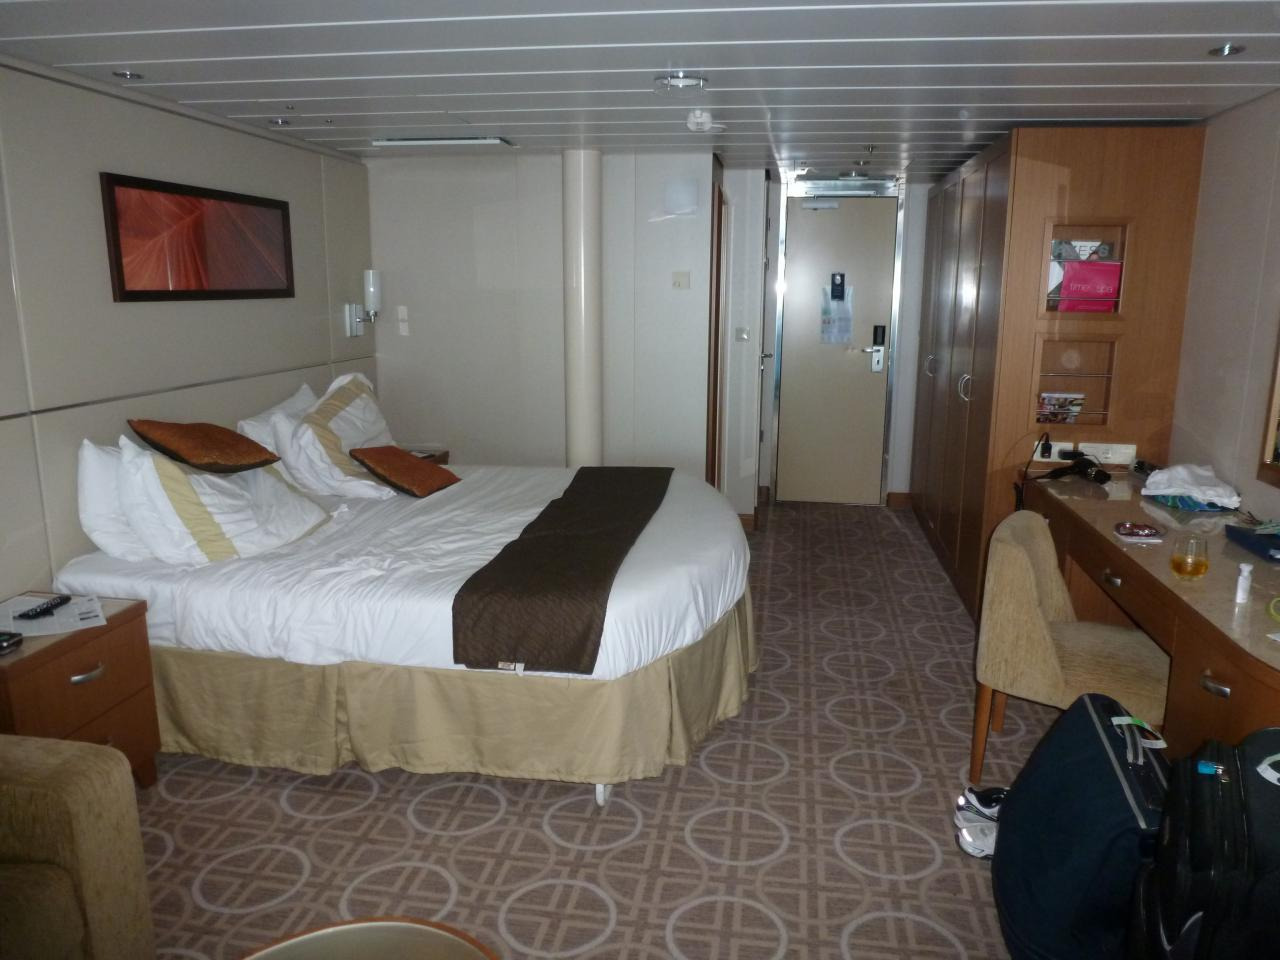 U Form Couch Celebrity Solstice Cruise Review For Cabin 2126